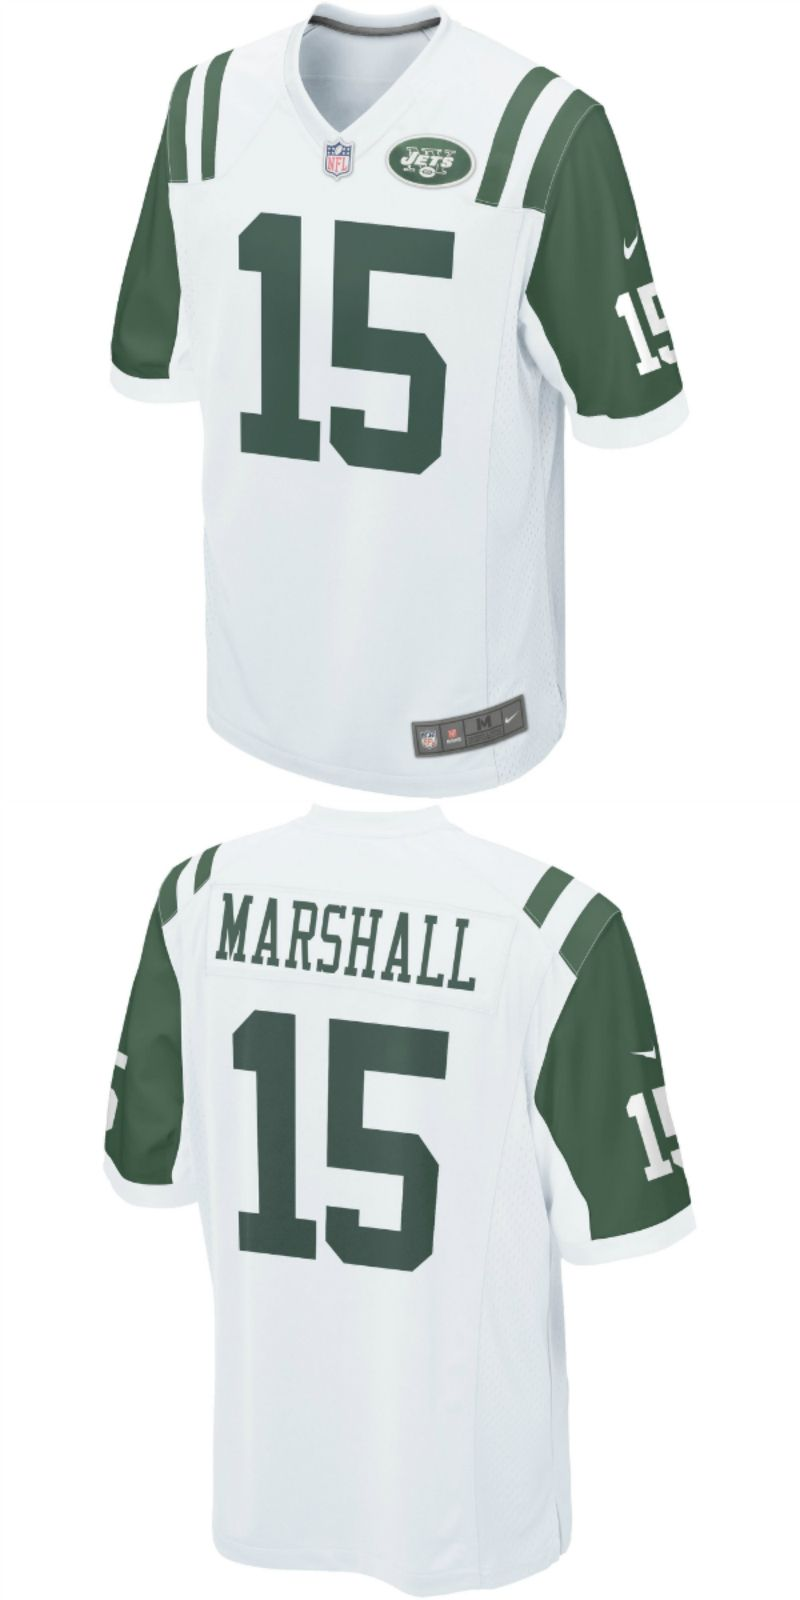 11f91fe6 Brandon Marshall New York Jets Nike Limited Jersey Green. New York Jets  Future Husband Jj Watt Pink Yeti Deshaun Watson Website Texas Bracelets  Colleges I ...